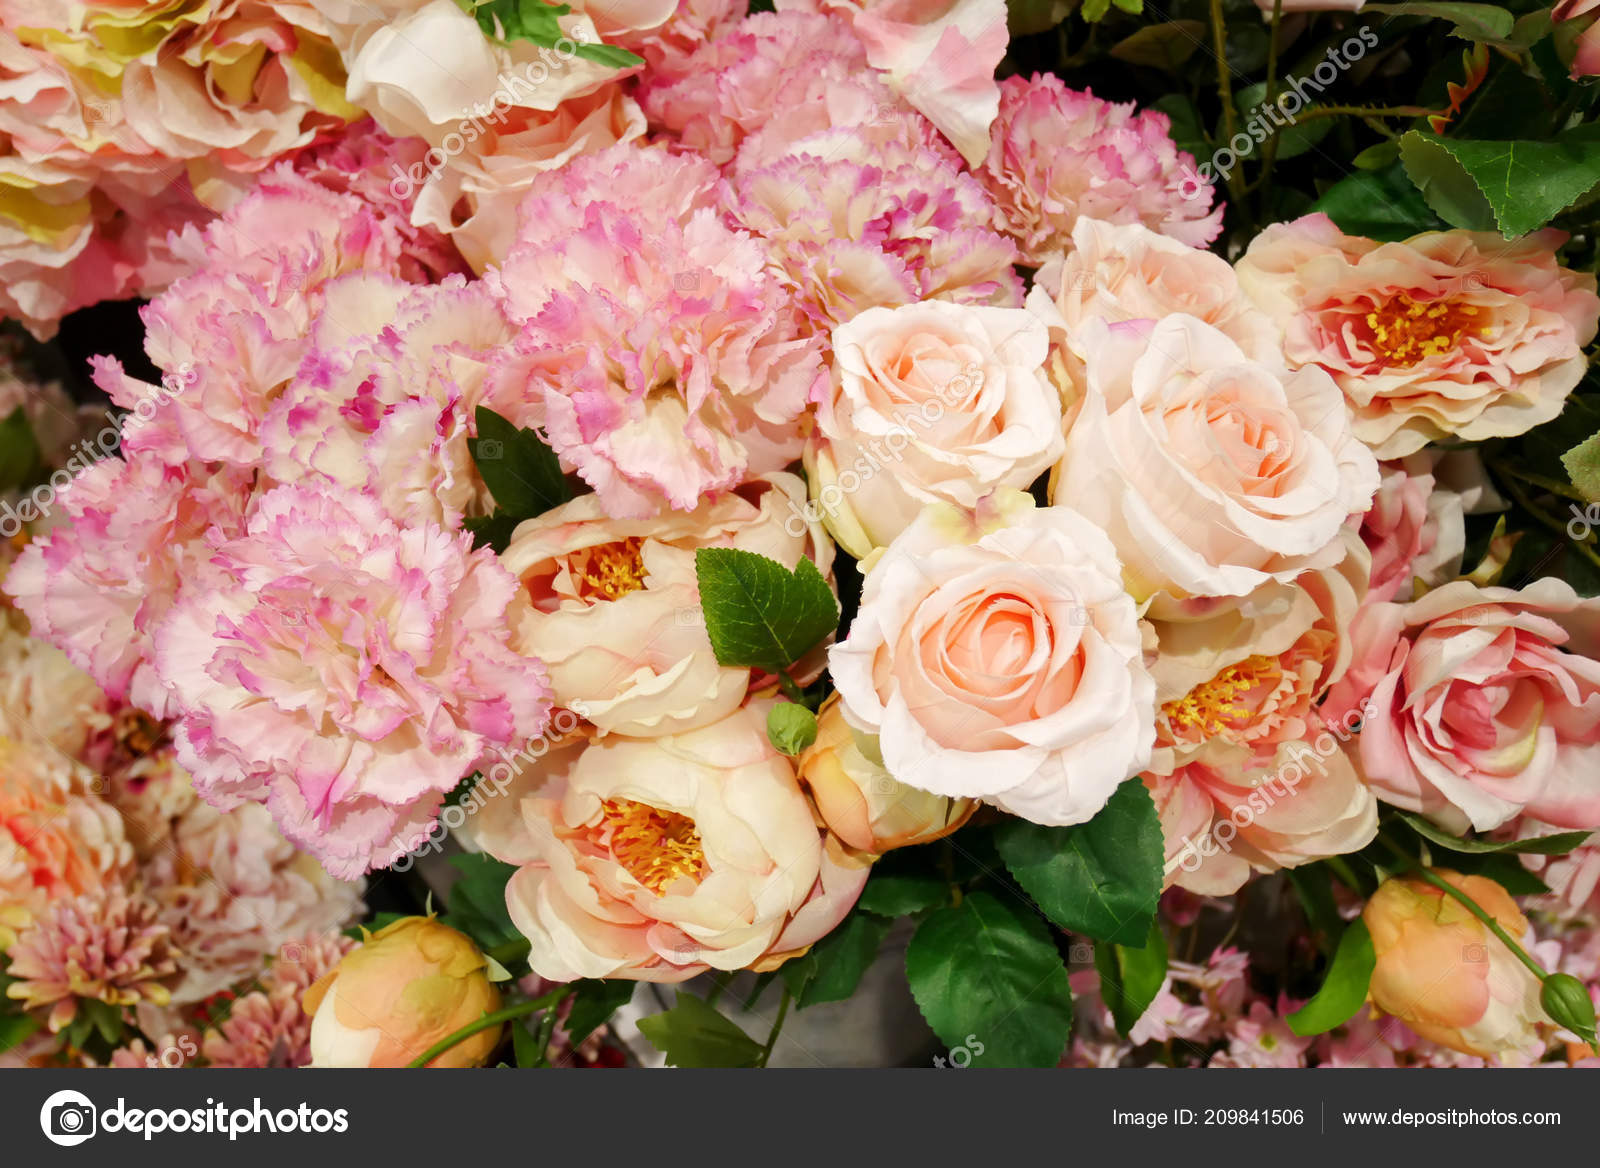 Beautiful Colorful Flowers Wall Background Flowers Made Fabric Stock Photo C Ducksmall 209841506